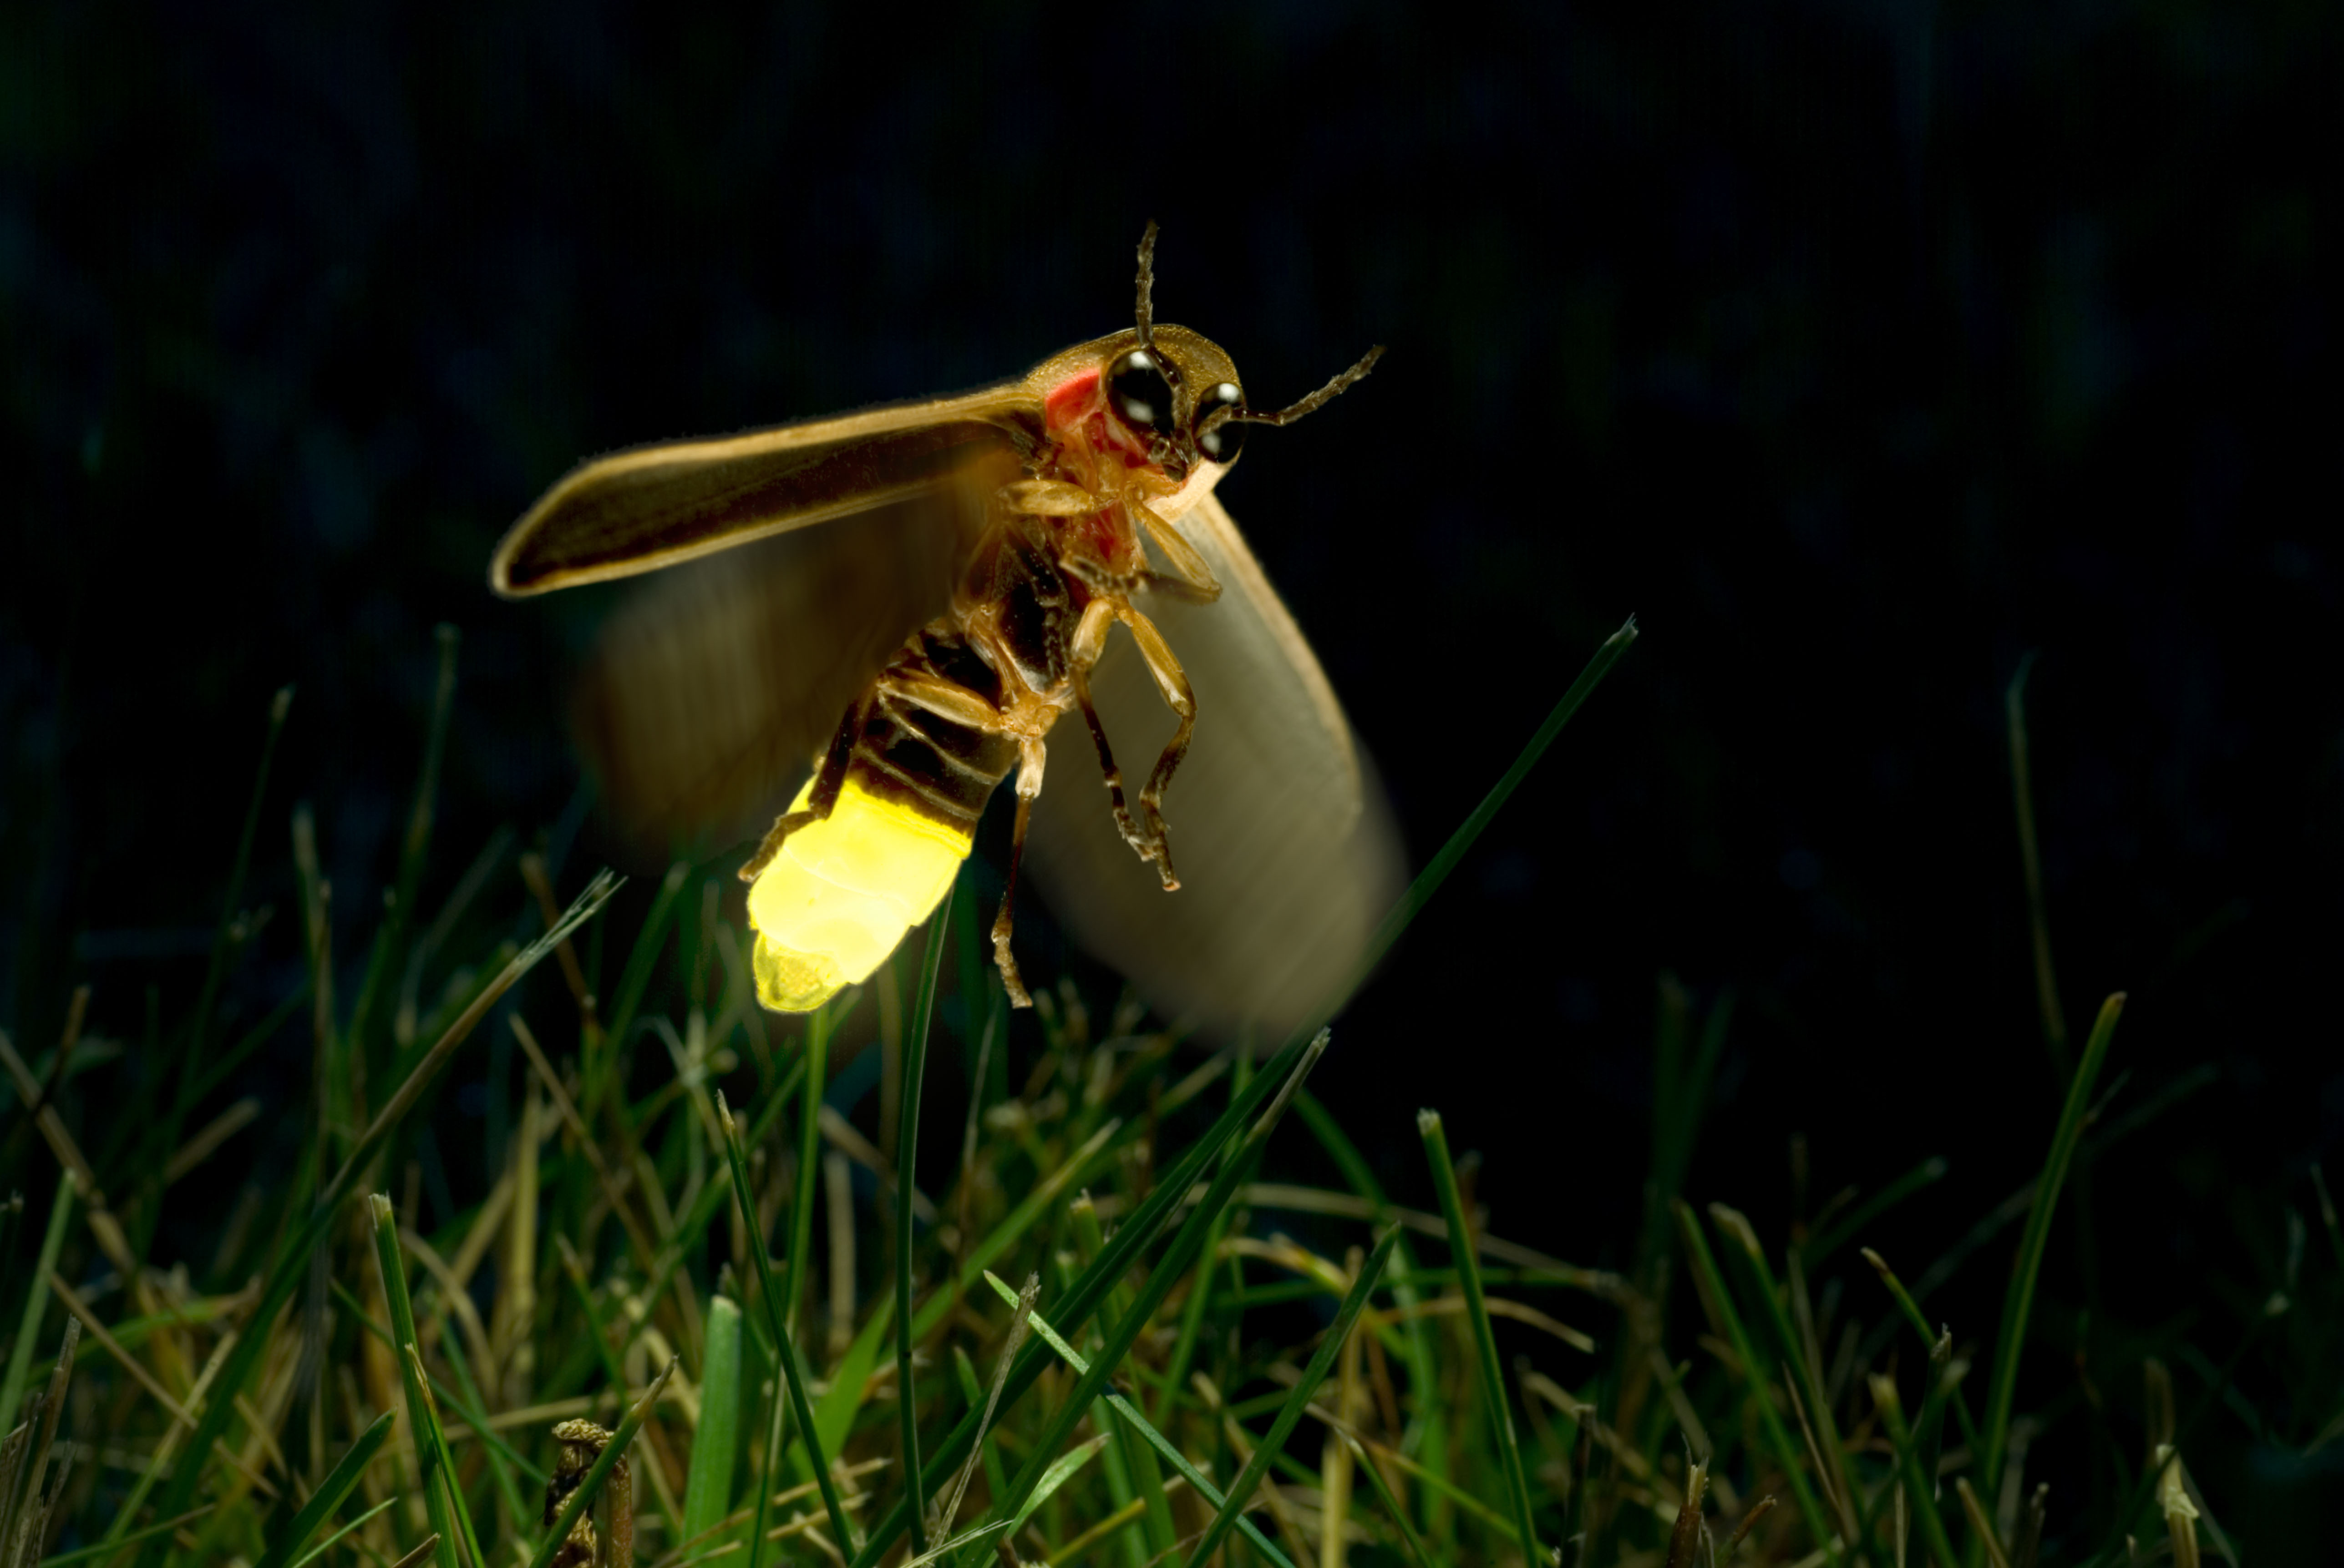 ***This image has been licensed for one time use only. Please contact the copyright owner BEFORE reusing this image***** A8TC0A Firefly Twilight Flight (credit: Alamy/ArgusPhoto)